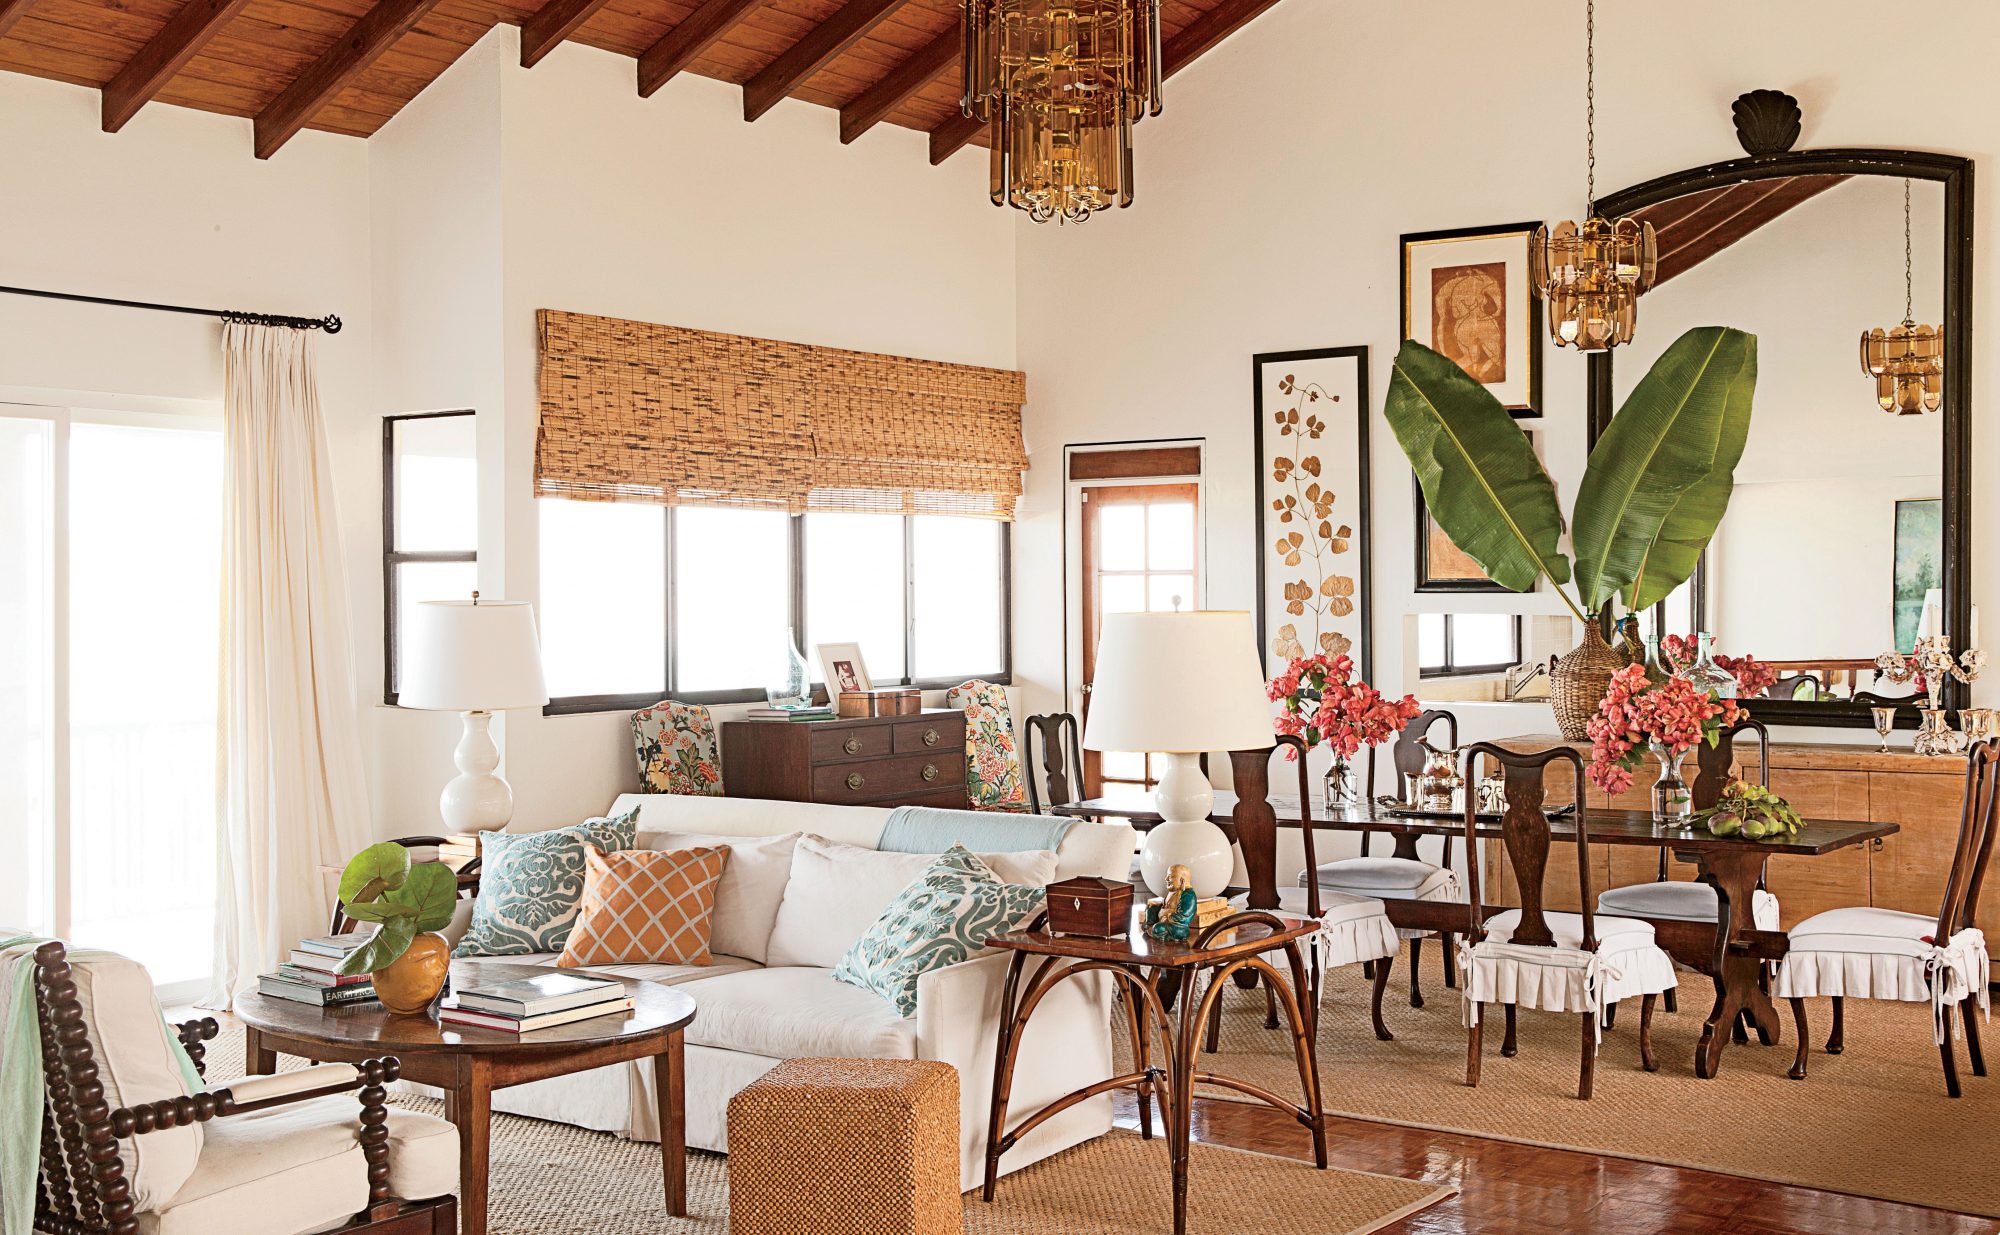 This St. Kitts great room features dark stained wood—a frequent feature of island design—but also retains an airy feeling thanks to its vaulted ceilings, creamy walls, and natural fiber rugs.